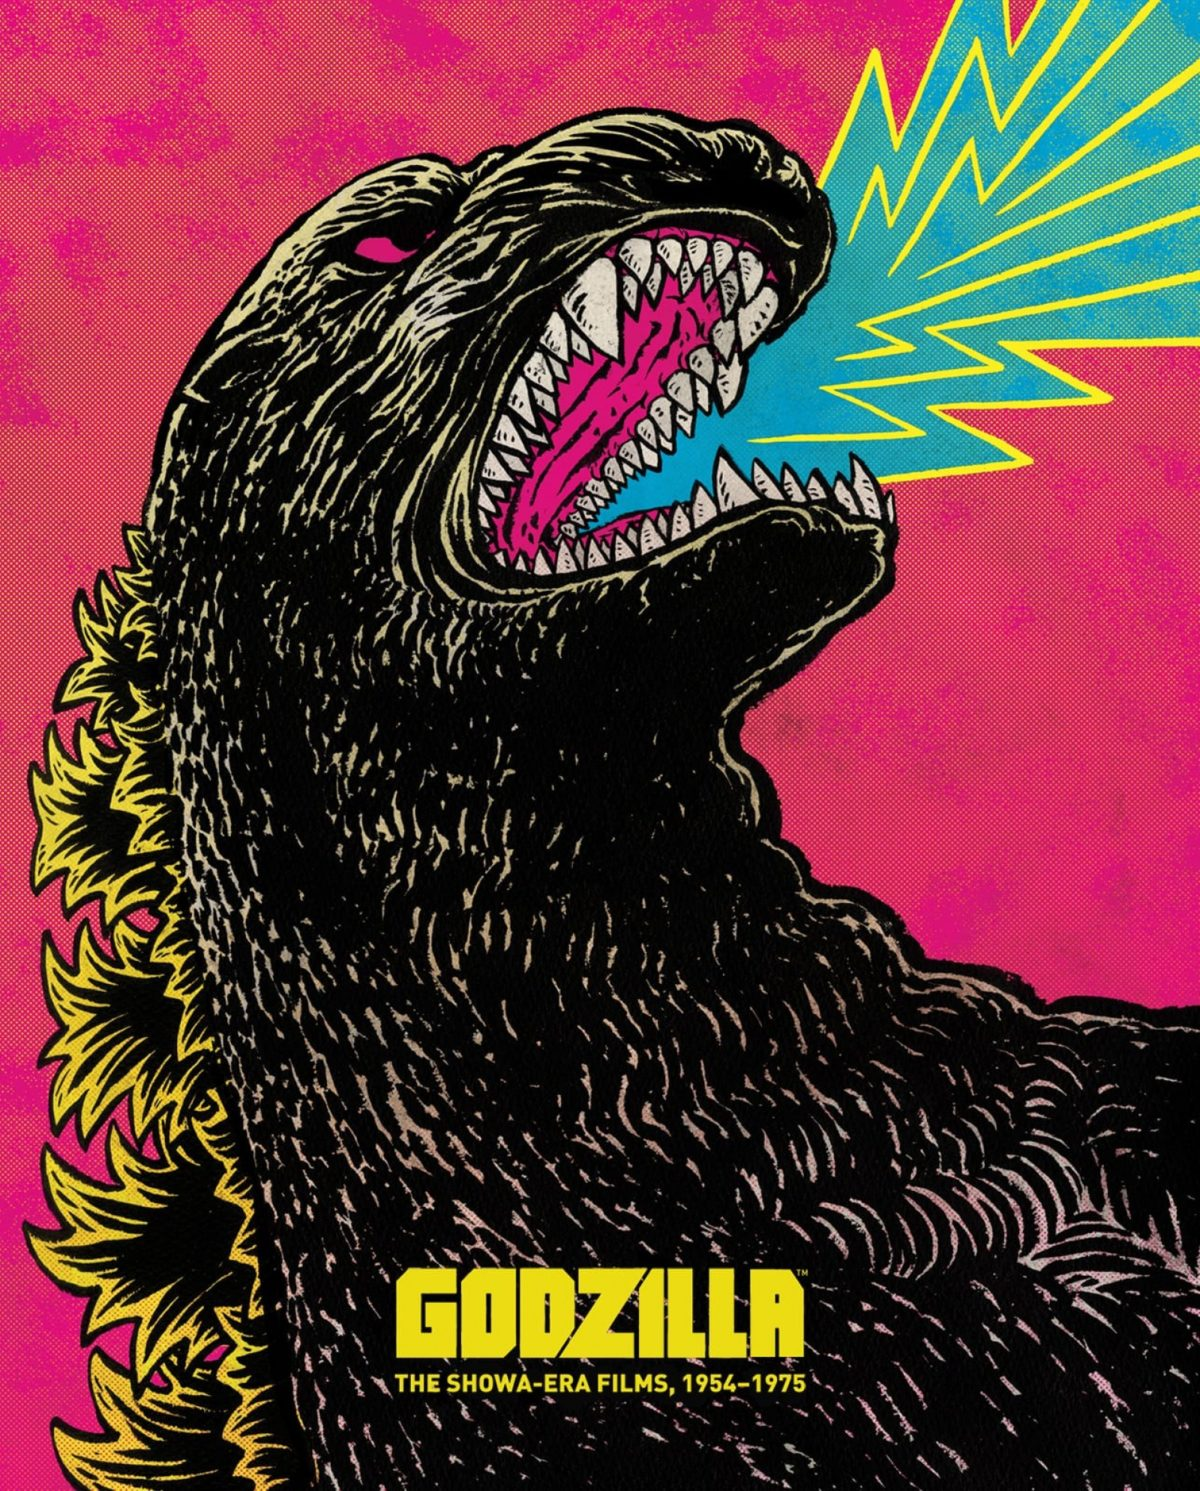 Godzilla: the Showa Era Films